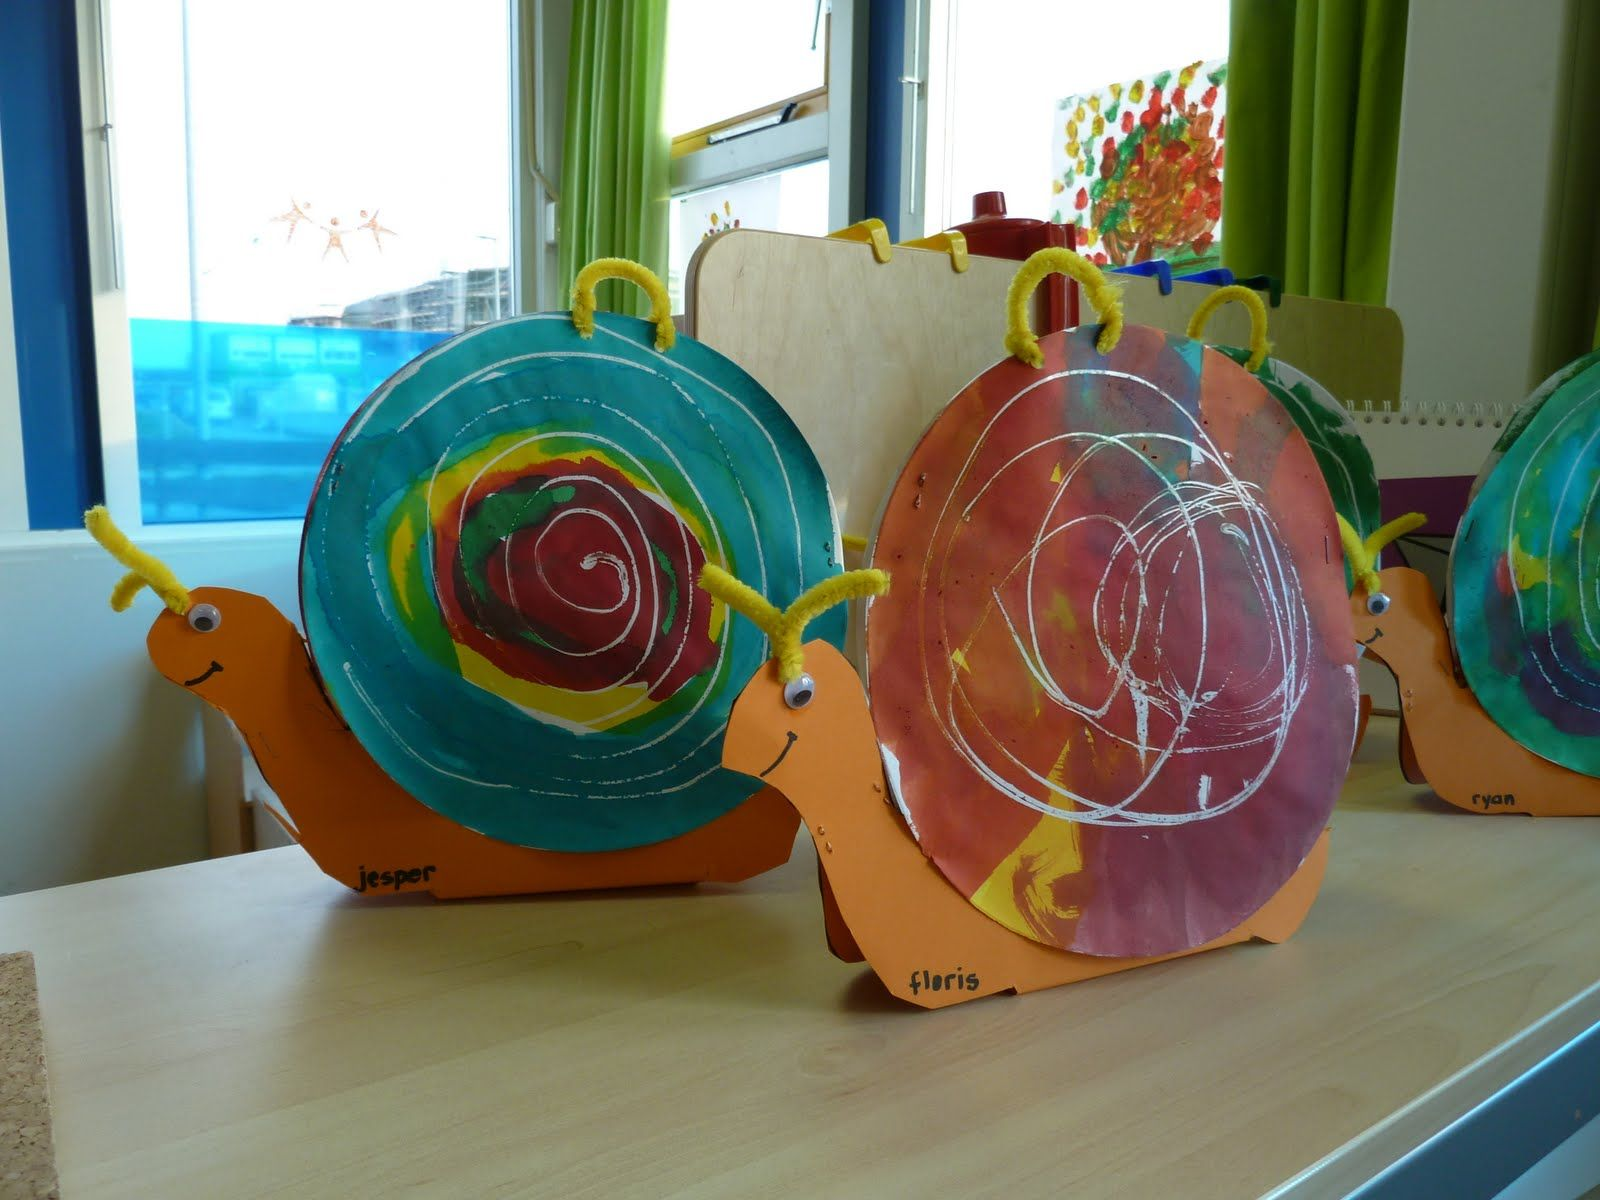 Snail craft for kids with crayon and then watercolor resist on a paper plate shell. & http://4.bp.blogspot.com/-TADo22O7x3A/TrQY84QCPZI/AAAAAAAAEEI/yObbWr ...